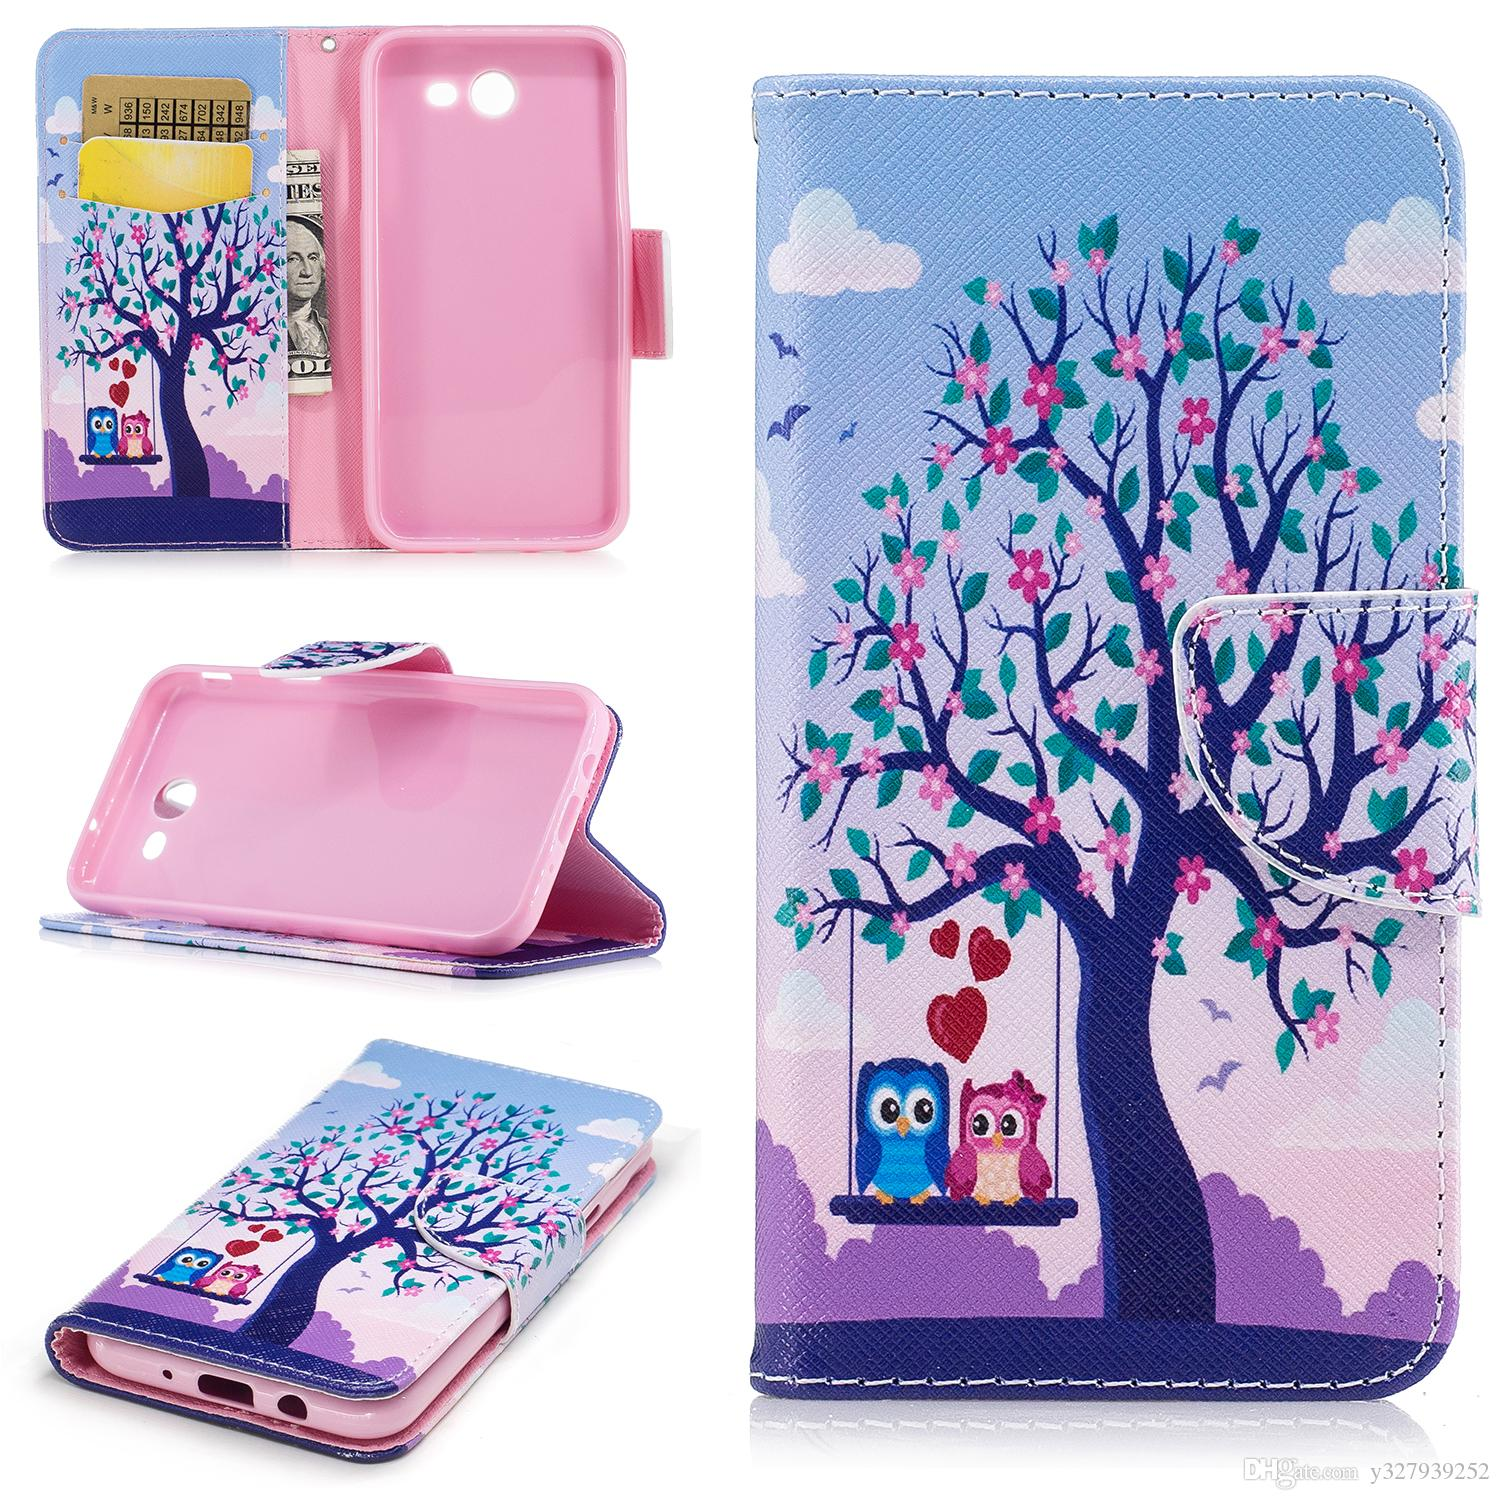 Flip Case For Samsung Galaxy J3 2017 J330f Ds Sm J330f Ds Phone Leather Cover For Samsung J 3 2017 330 J330 Sm J330g Phone Cases Cheap Cell Phone Cases